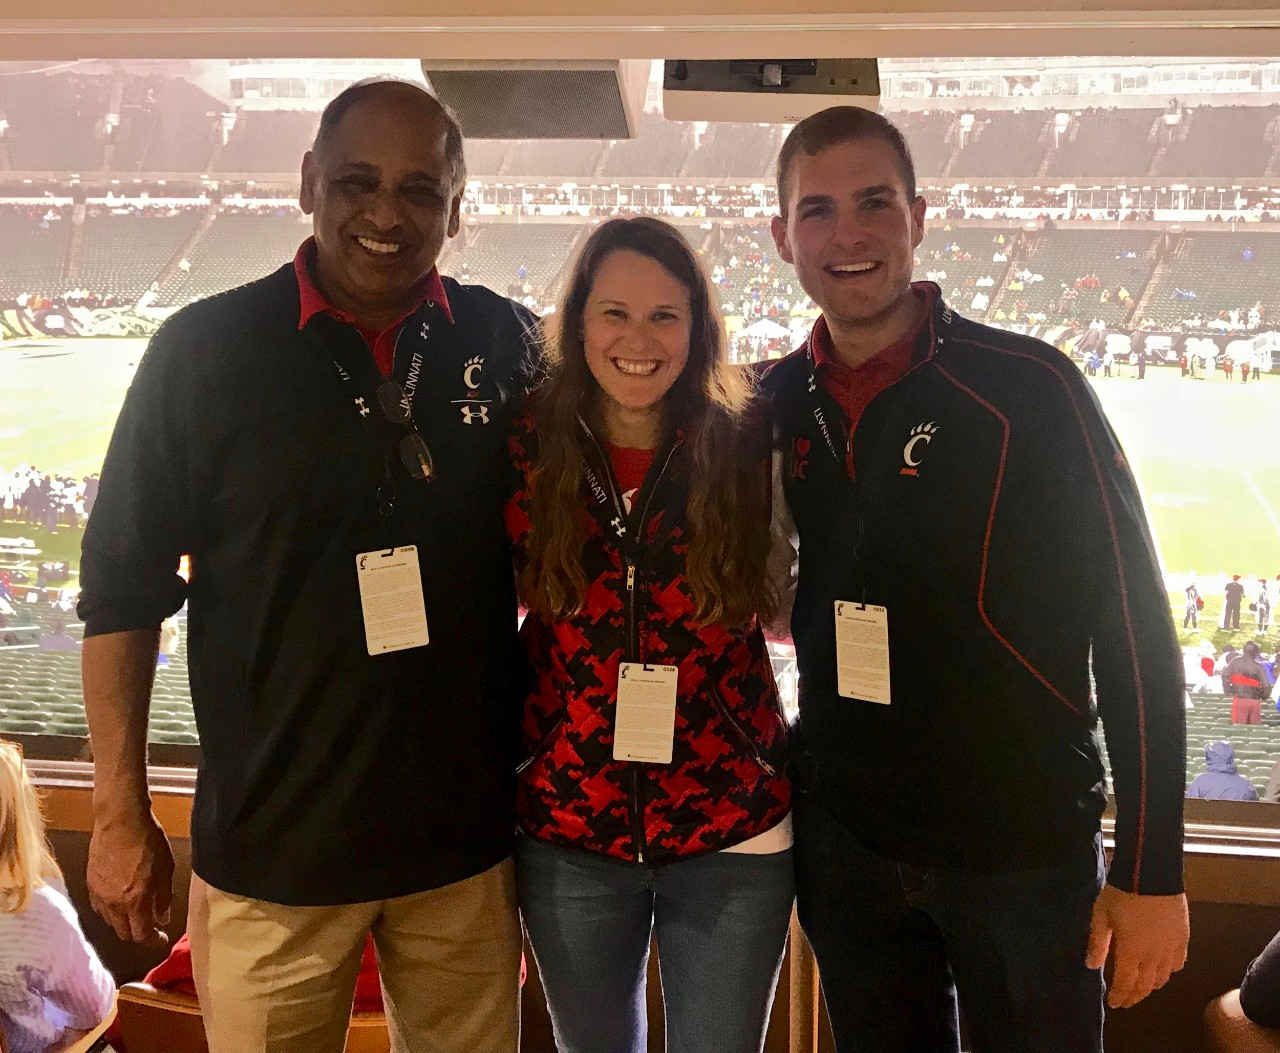 UC President Neville Pinto, PLME student Kendall Cappel and Lindner IT student Kevin Thomas stand together in Paul Brown Stadium.